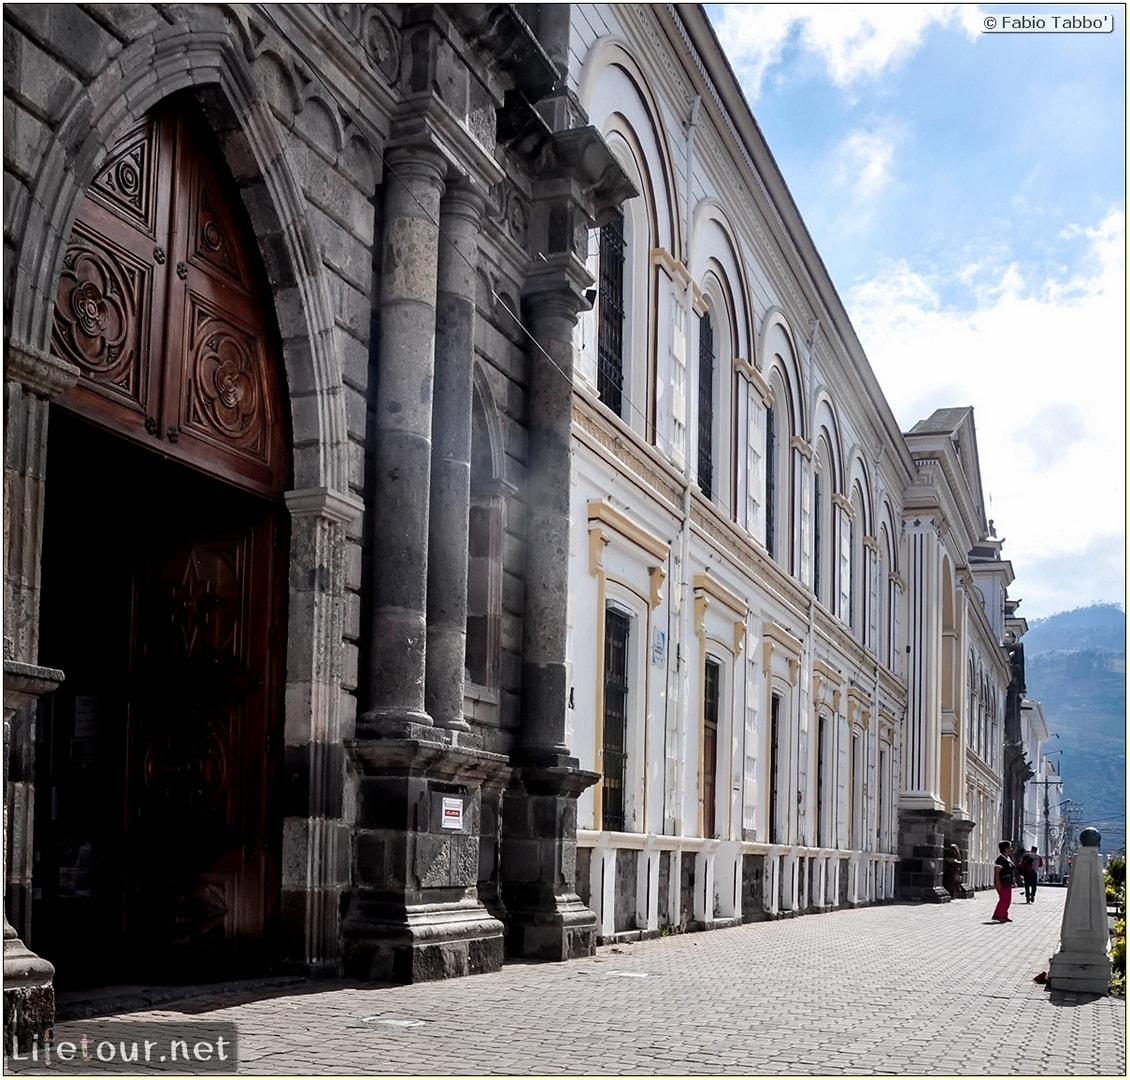 Fabio_s-LifeTour---Ecuador-(2015-February)---Ibarra---Capilla-Episcopal---10215 COVER